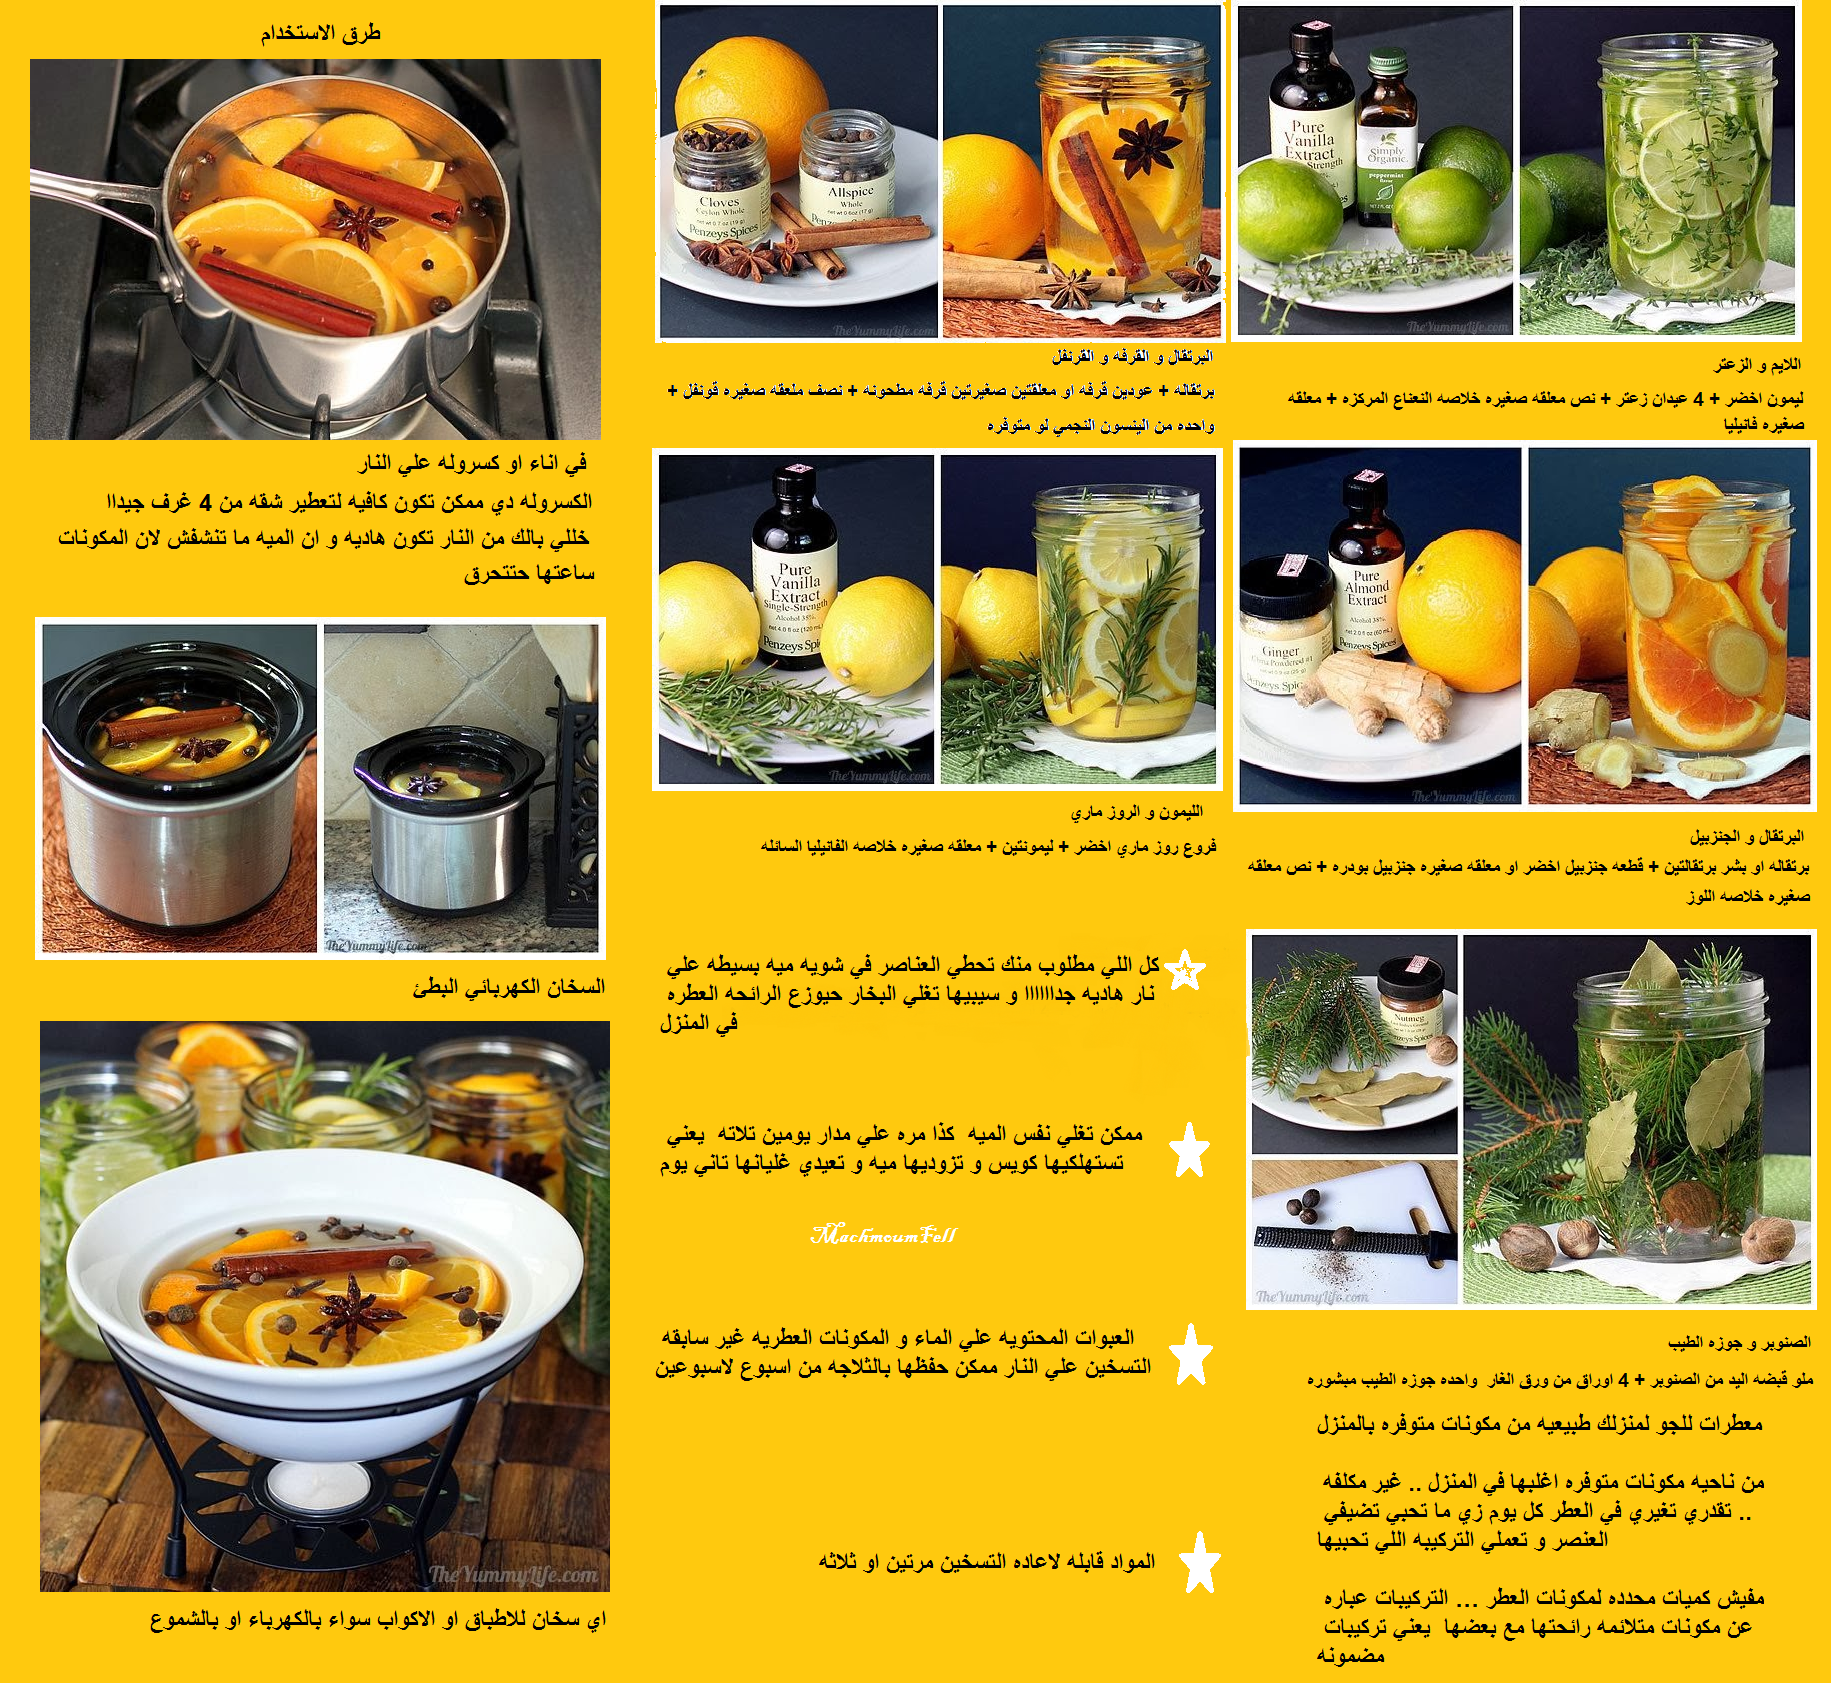 Pin by Machmoum Fell on ربة بيت Food, Fruit, Cantaloupe